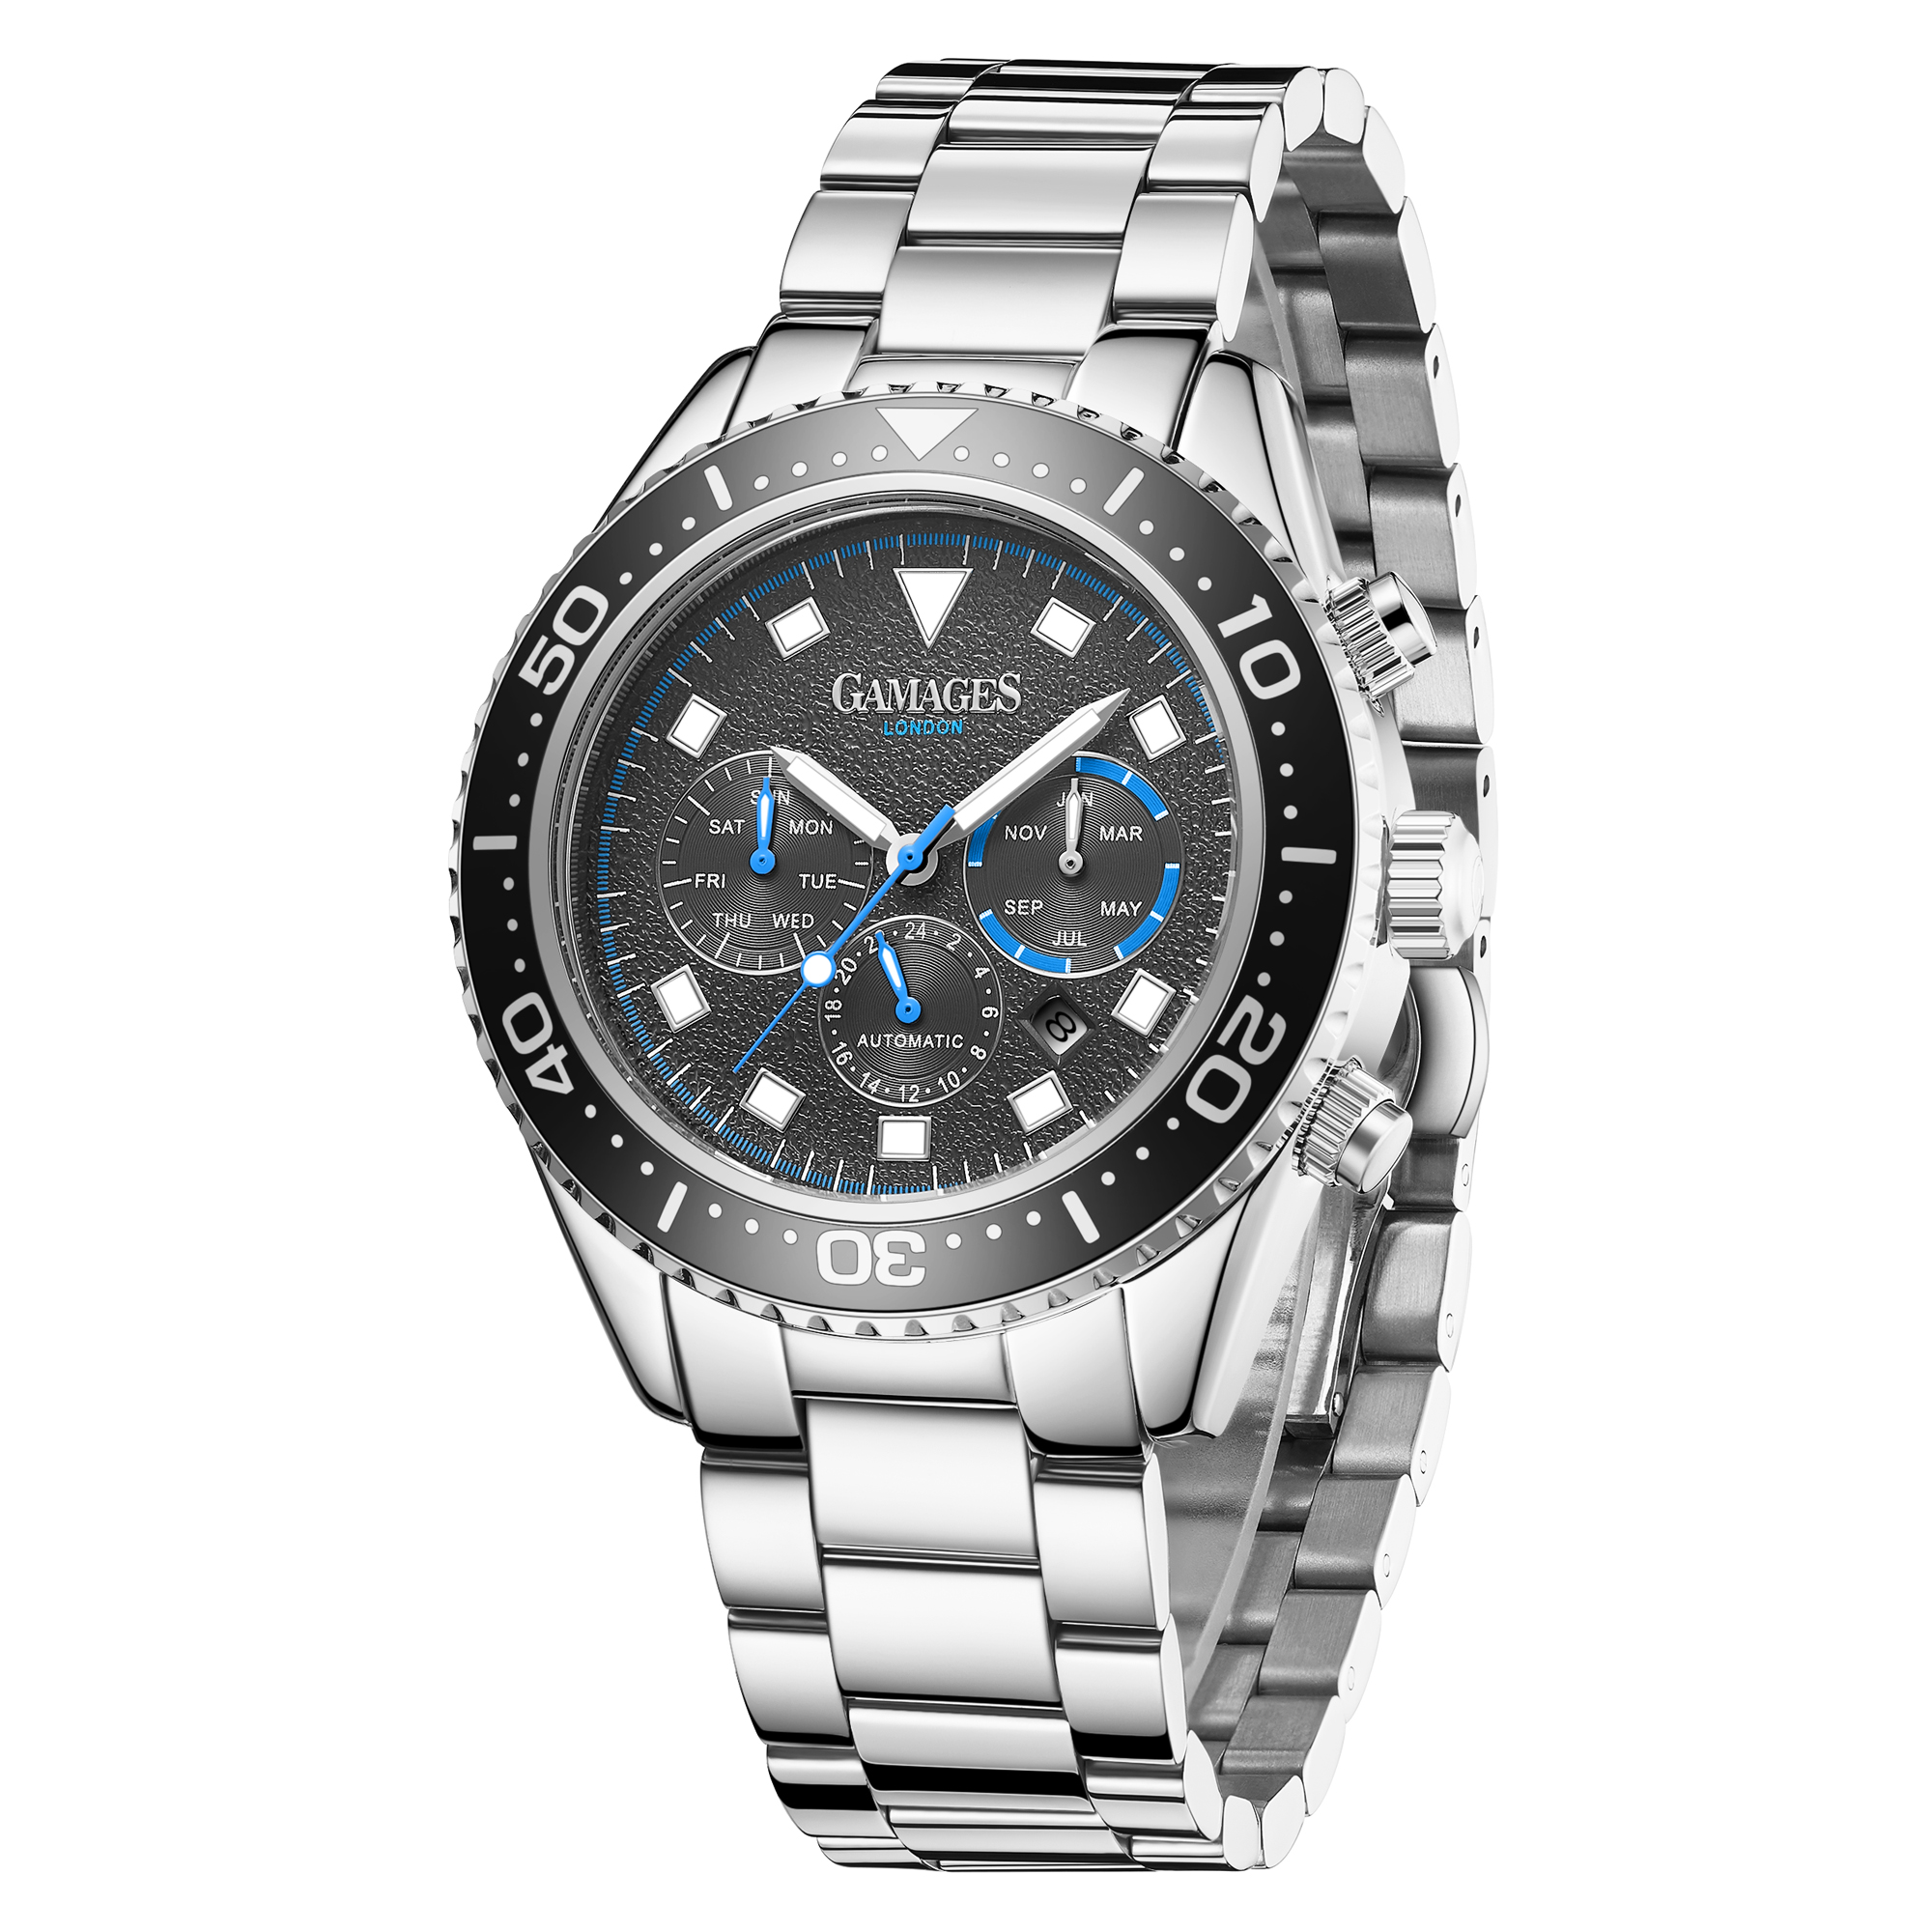 Limited Edition Hand Assembled Gamages Allure Automatic Steel – 5 Year Warranty & Free Delivery - Image 4 of 4